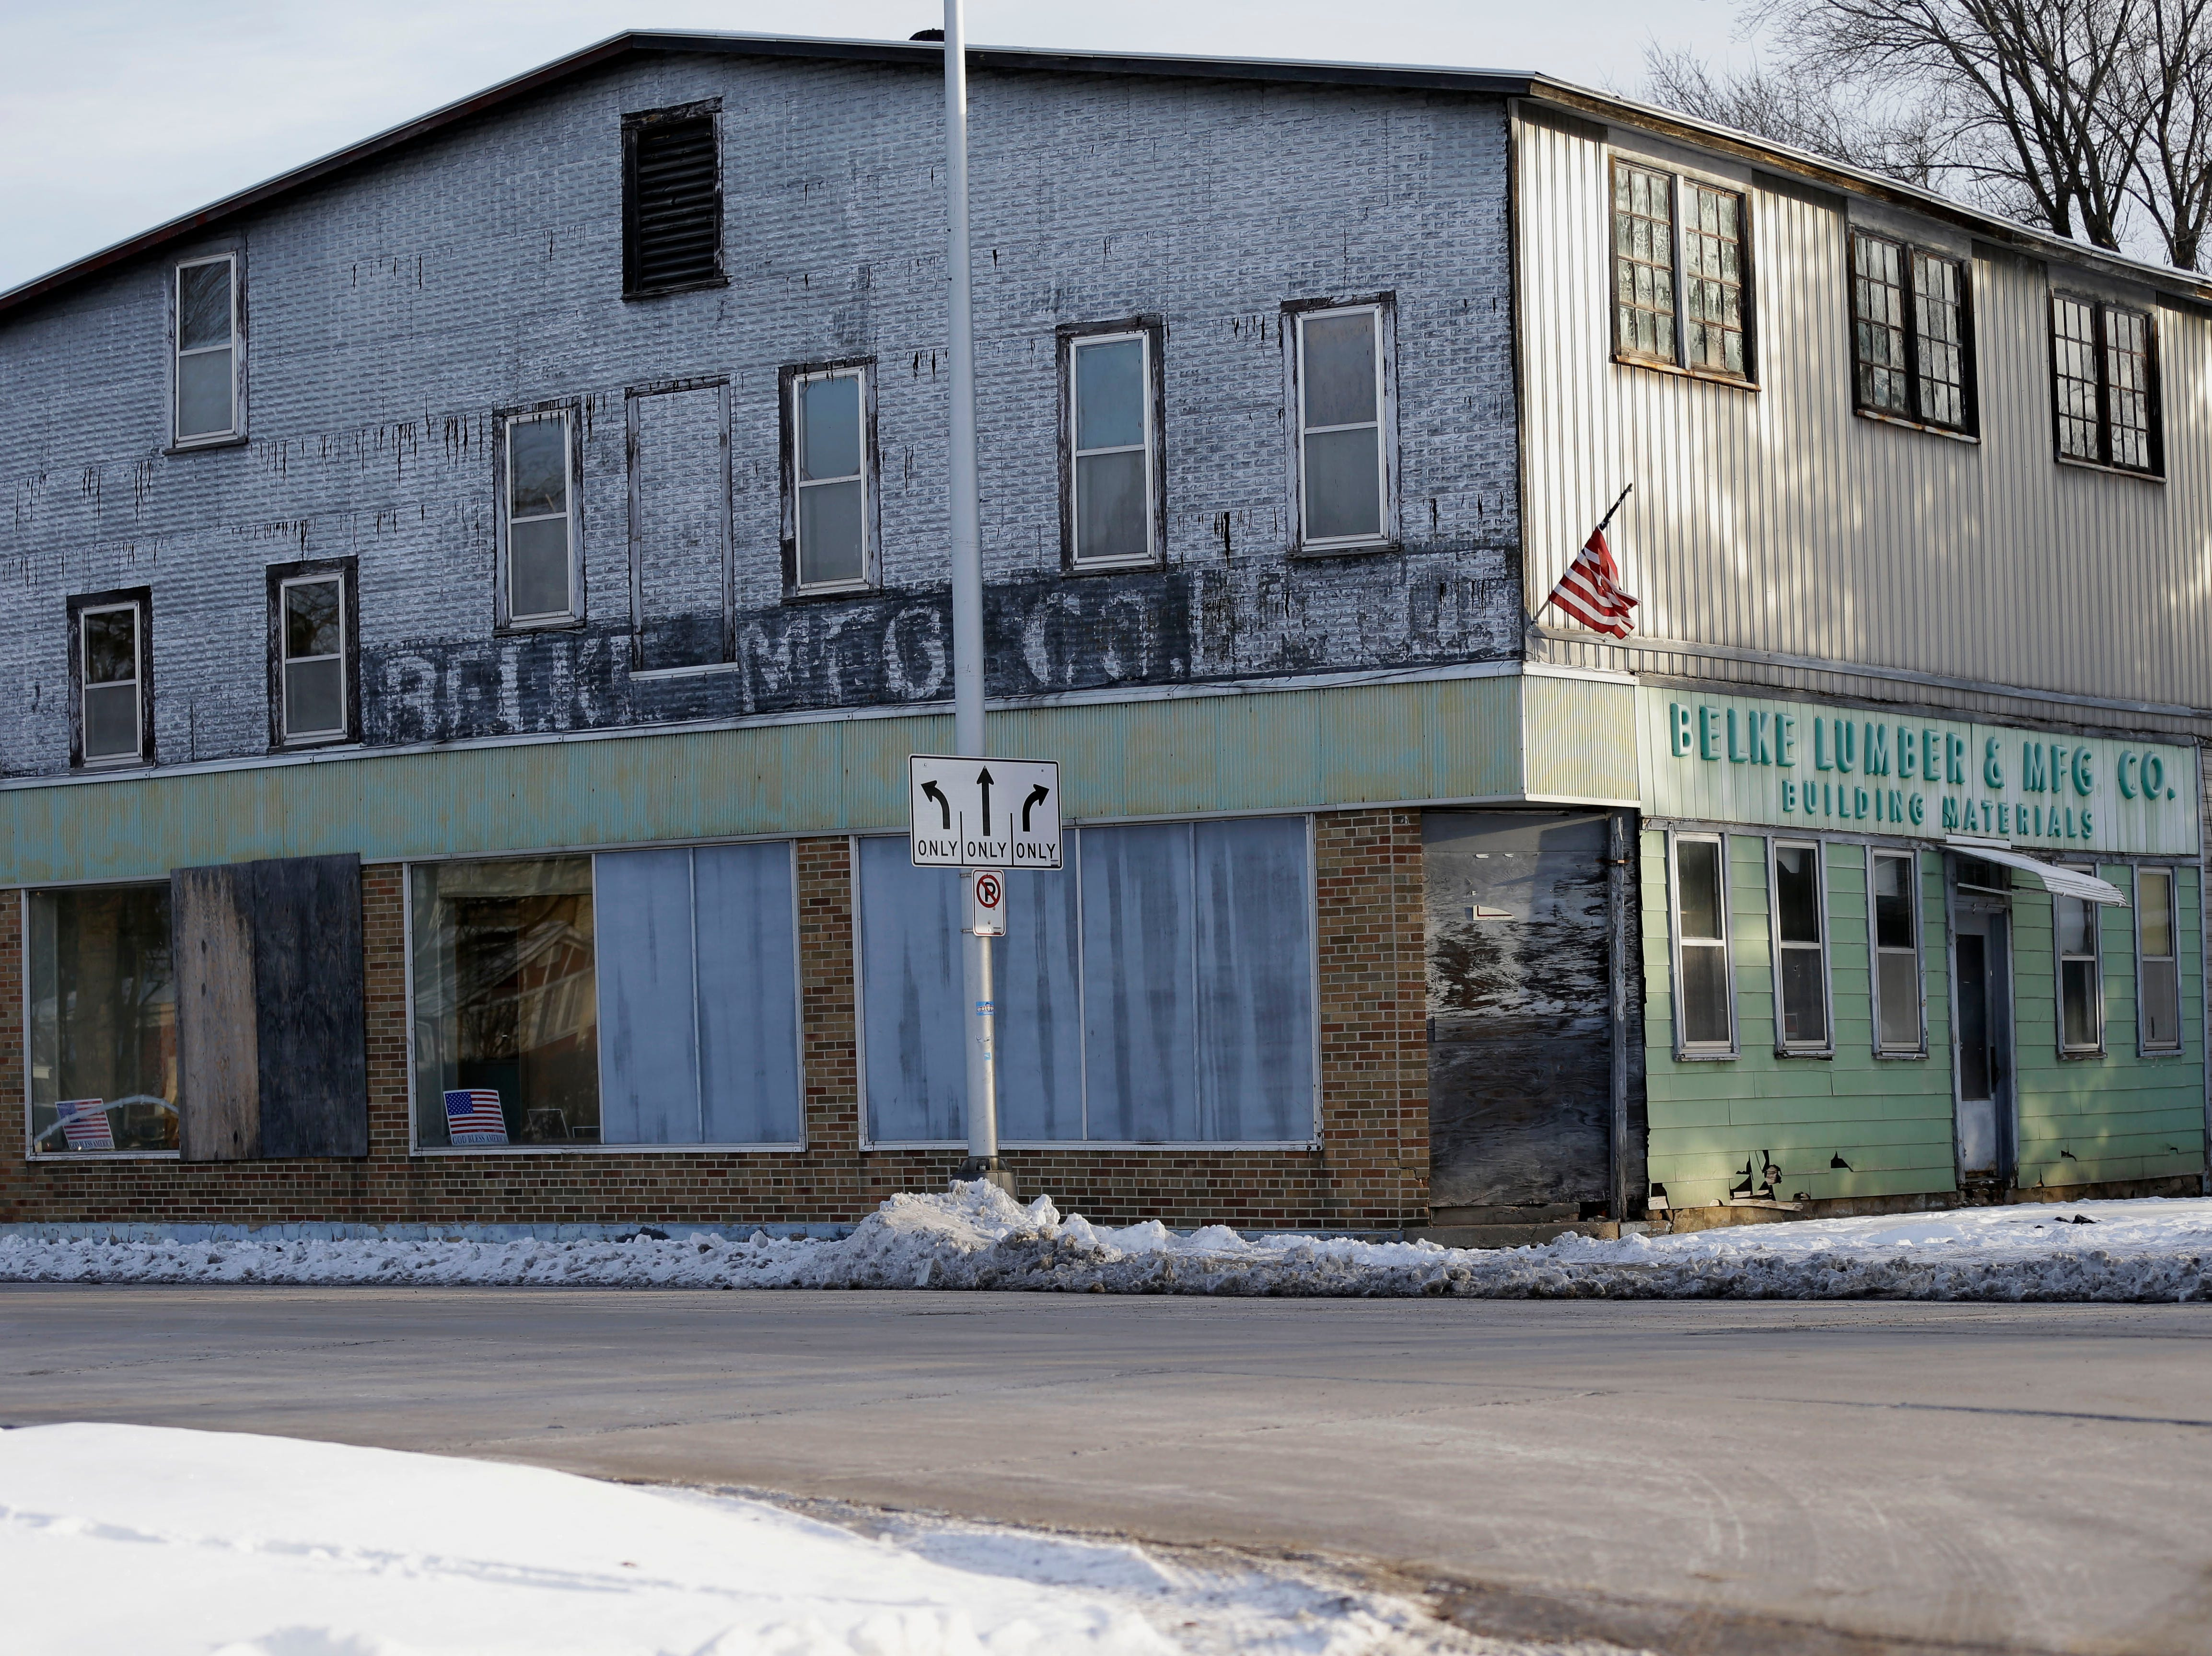 Developer proposes turning old Belke Lumber site into stores where owners could live